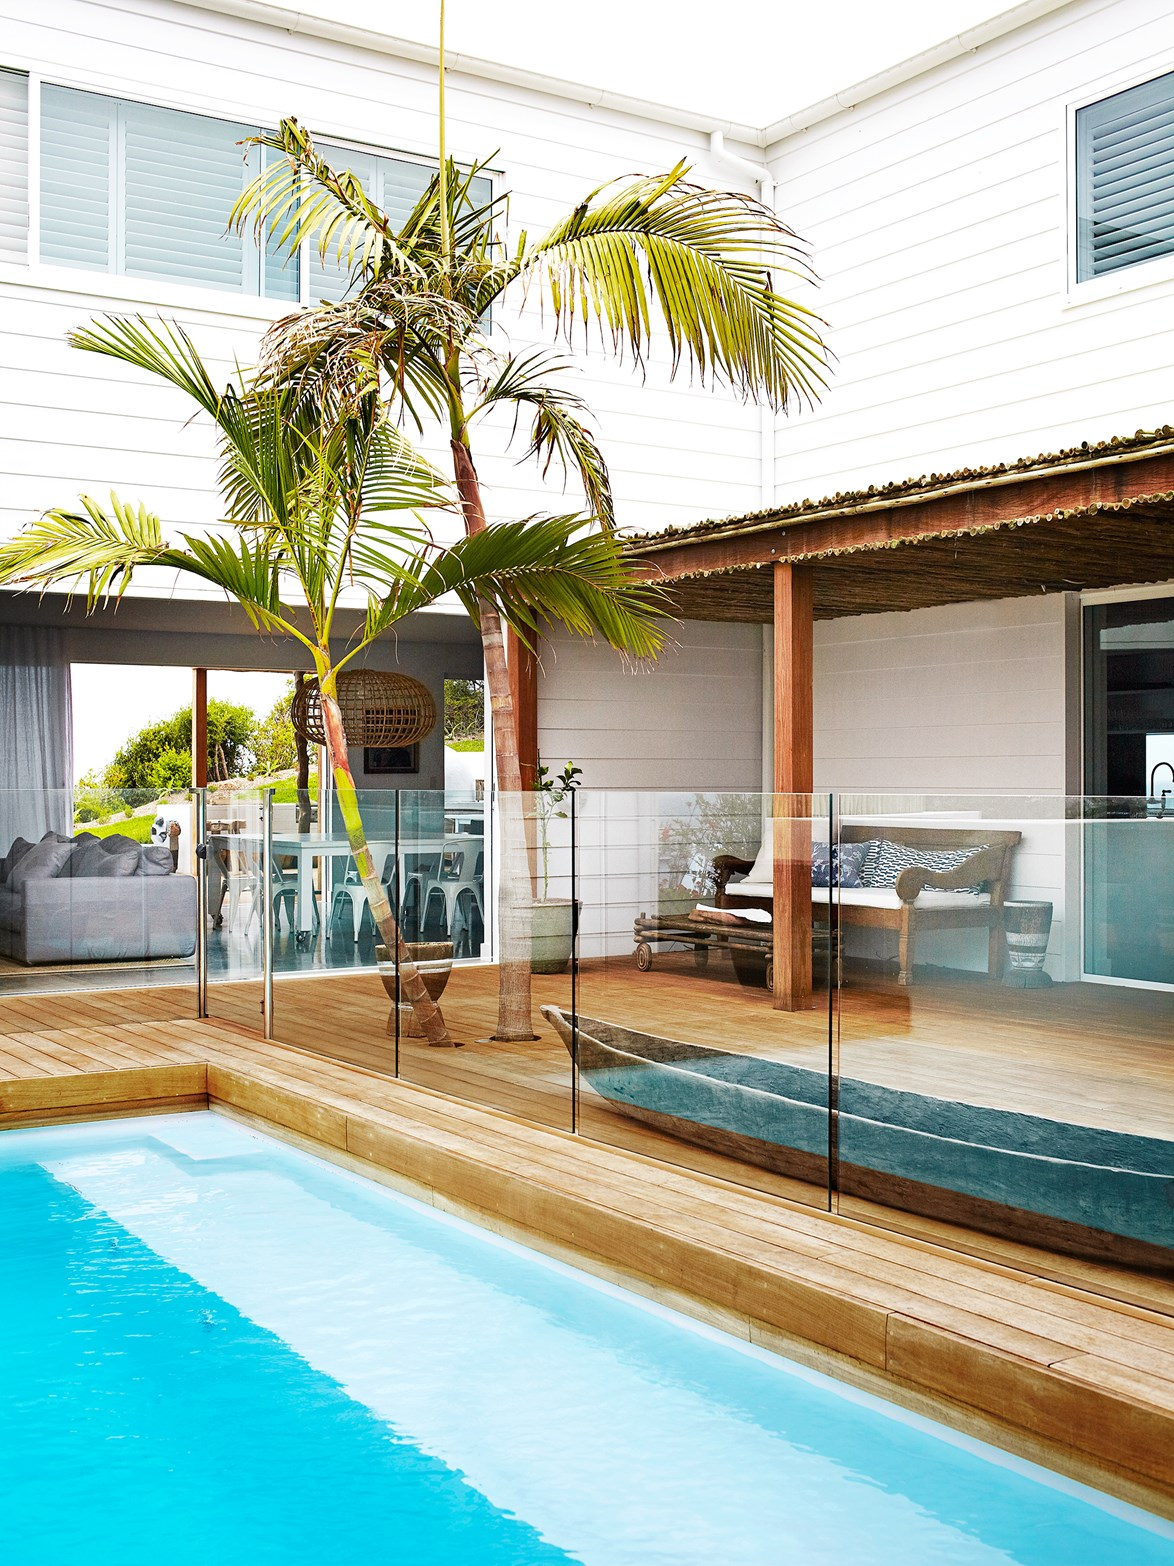 Built from scratch, this [contemporary weatherboard house](http://www.homestolove.com.au/weatherboard-home-with-wow-factor-3458) features a simple yet stylish beachy aesthetic with stunning ocean views. *Photography: Sharyn Cairns | Story: real living*